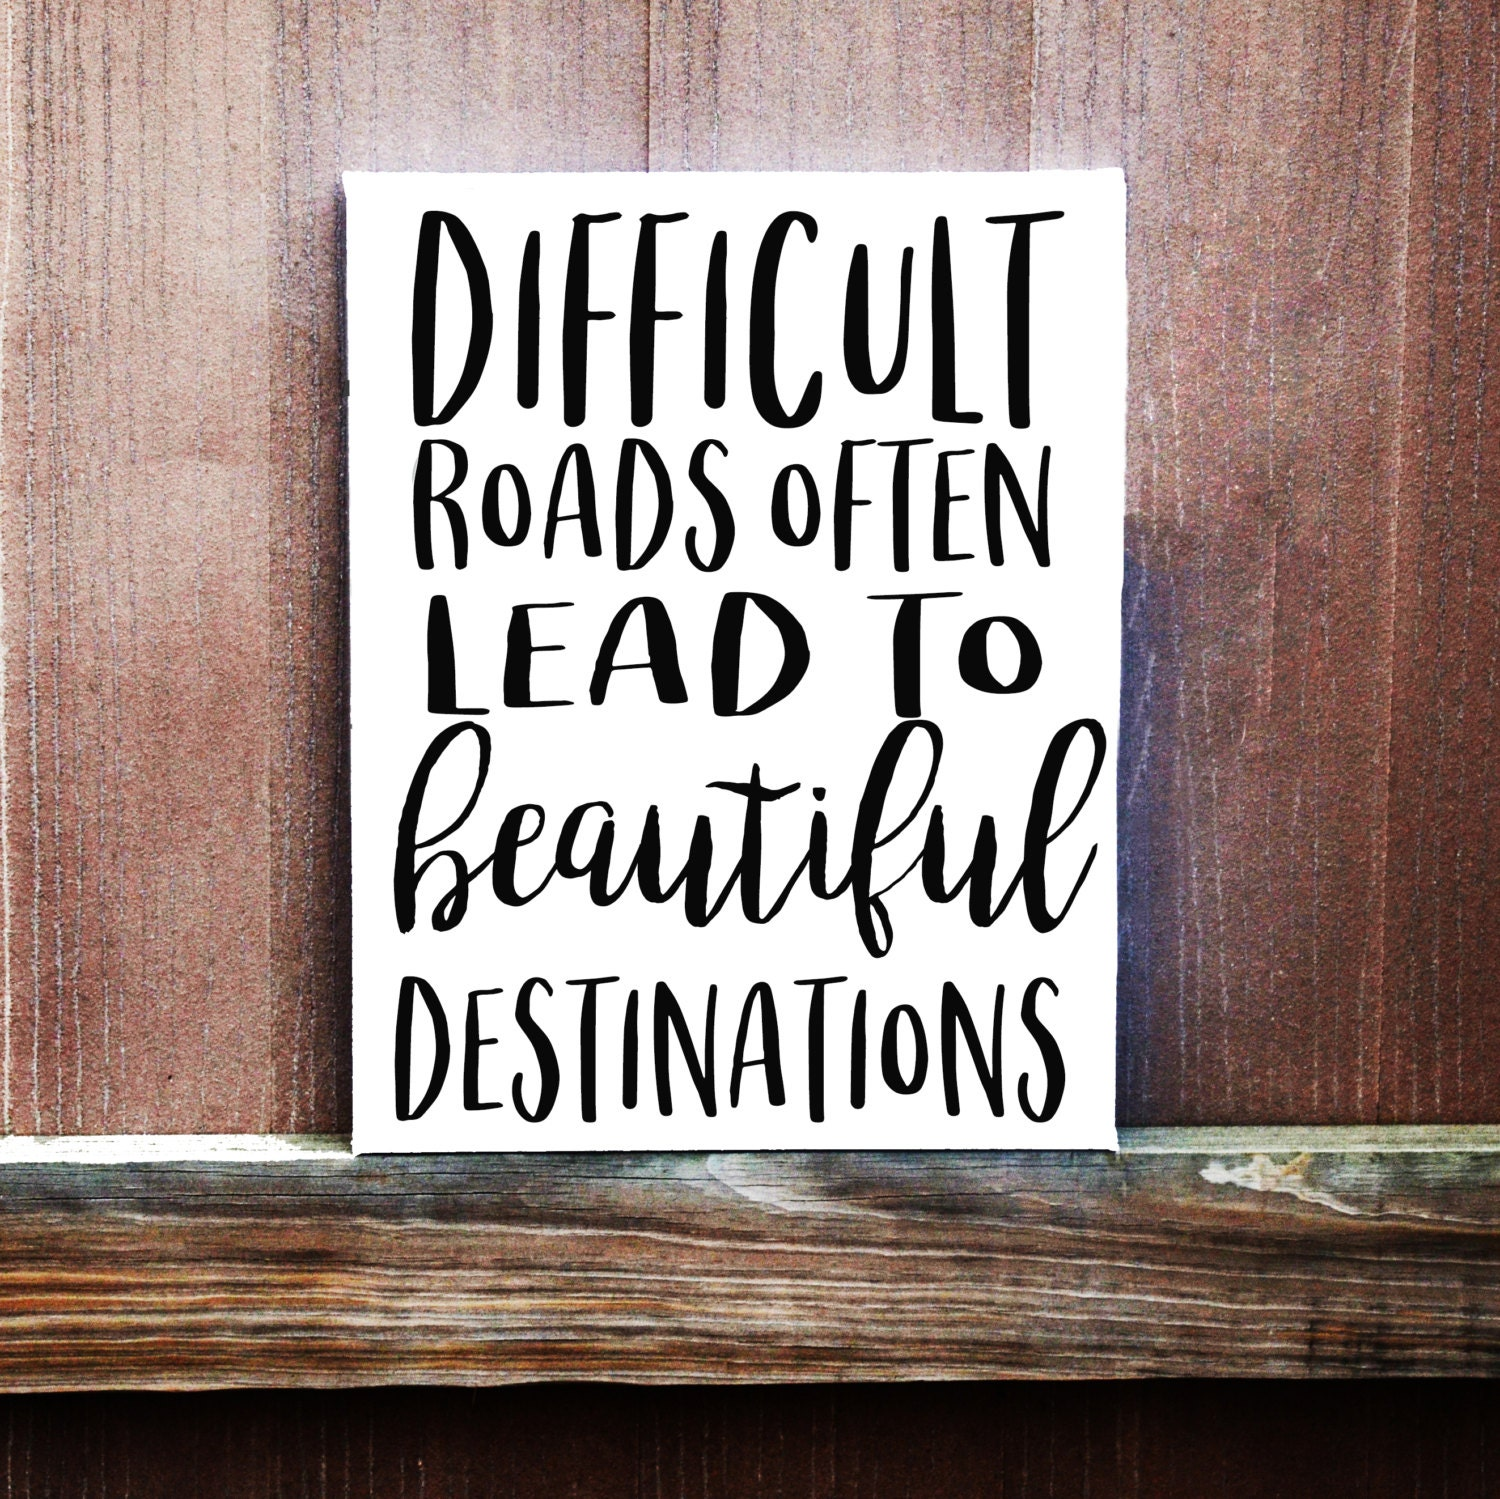 Love Quotes On Canvas Difficult Roads Often Lead To Beautiful Destinations Canvas